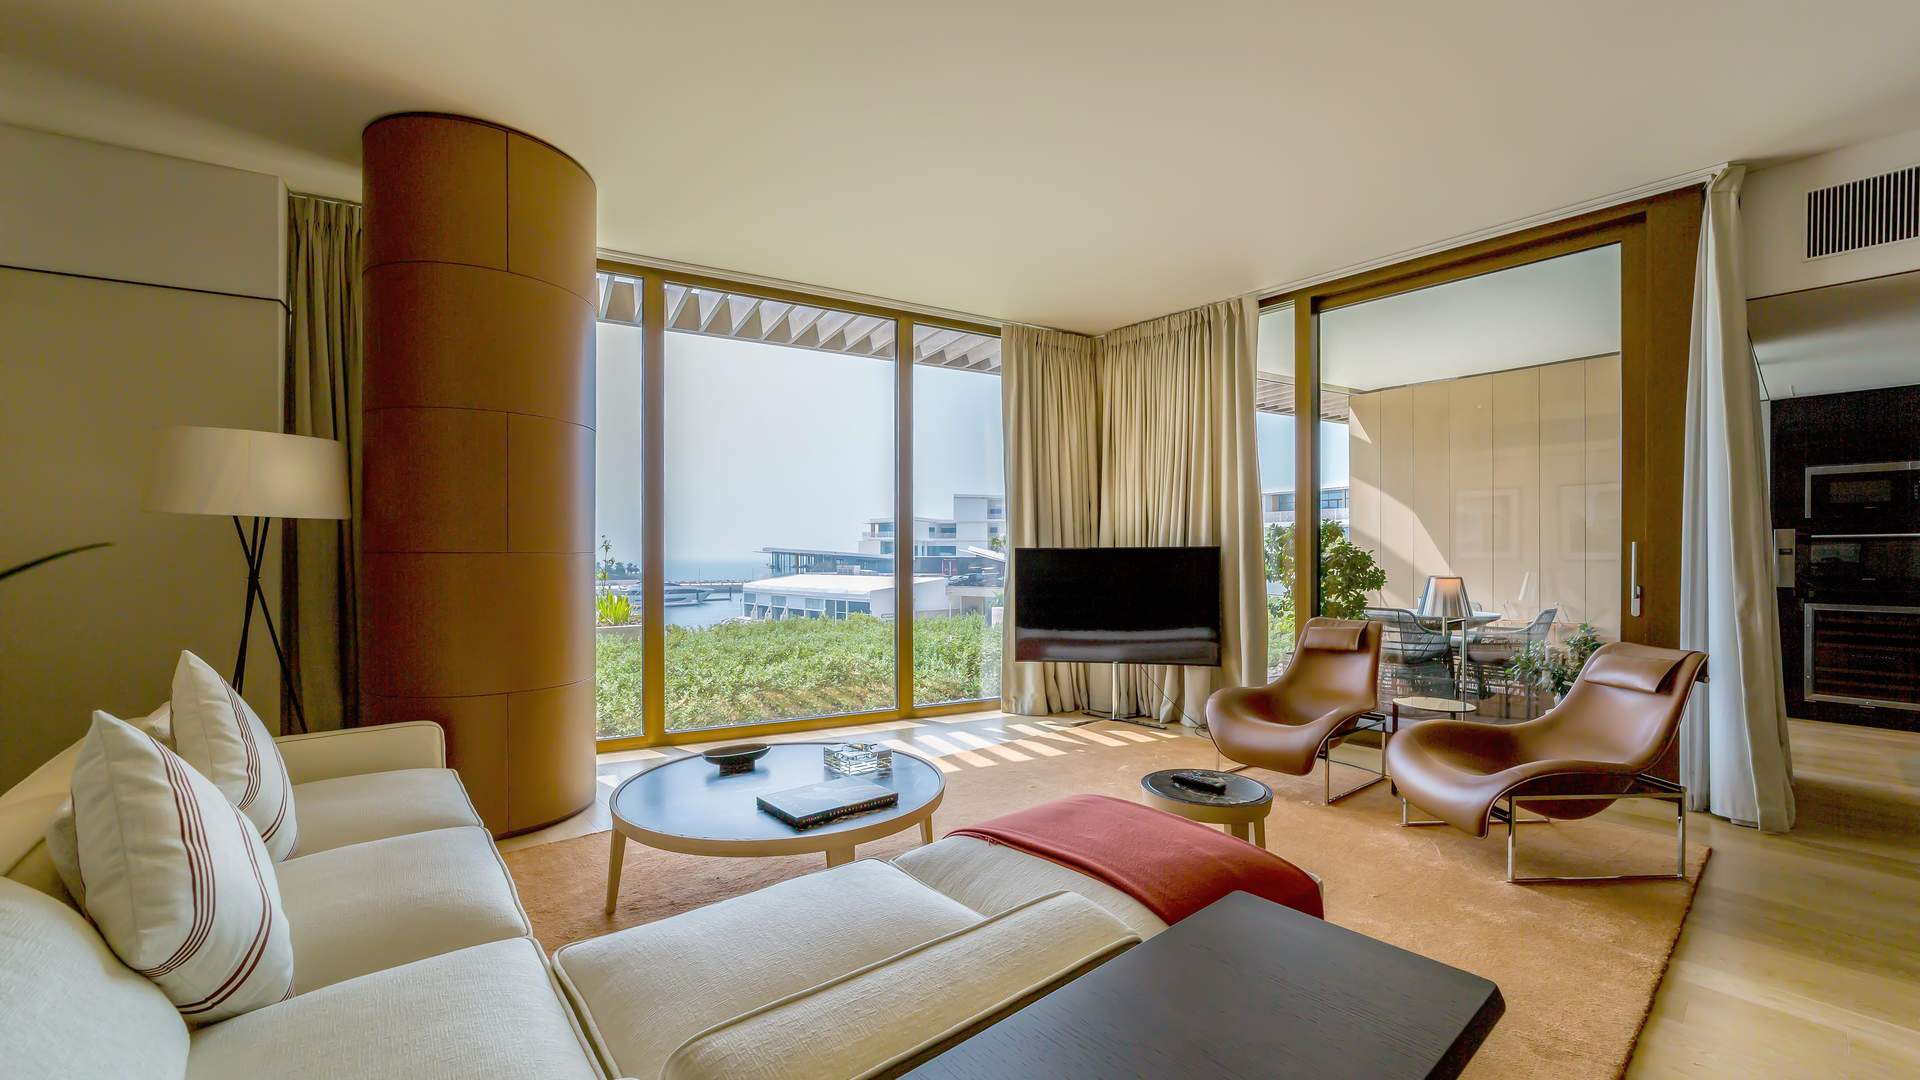 bulgari residences apartment